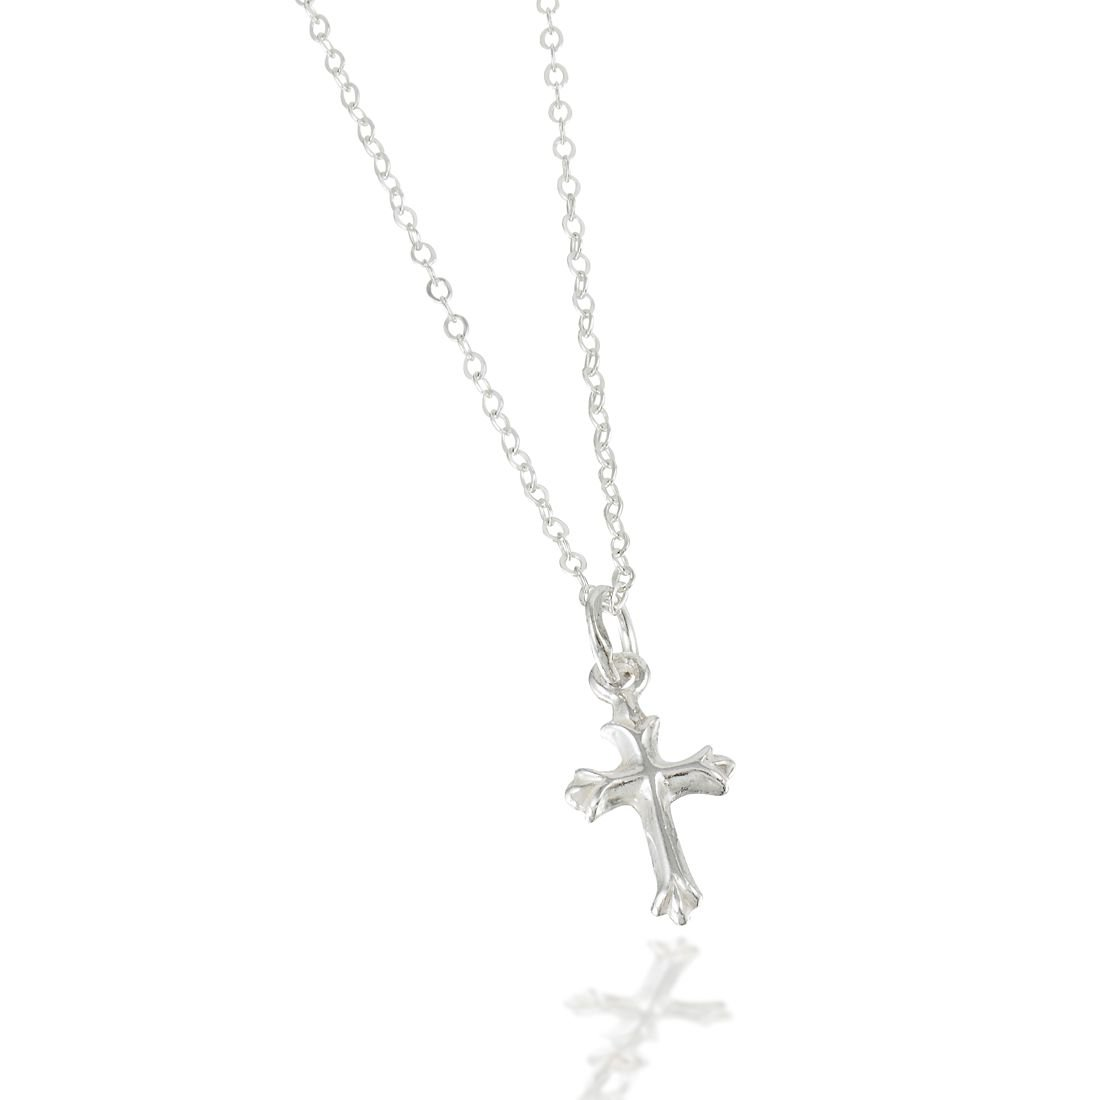 Beloved Child Goods Sterling Silver Cross Necklace with Chain for Babies (12